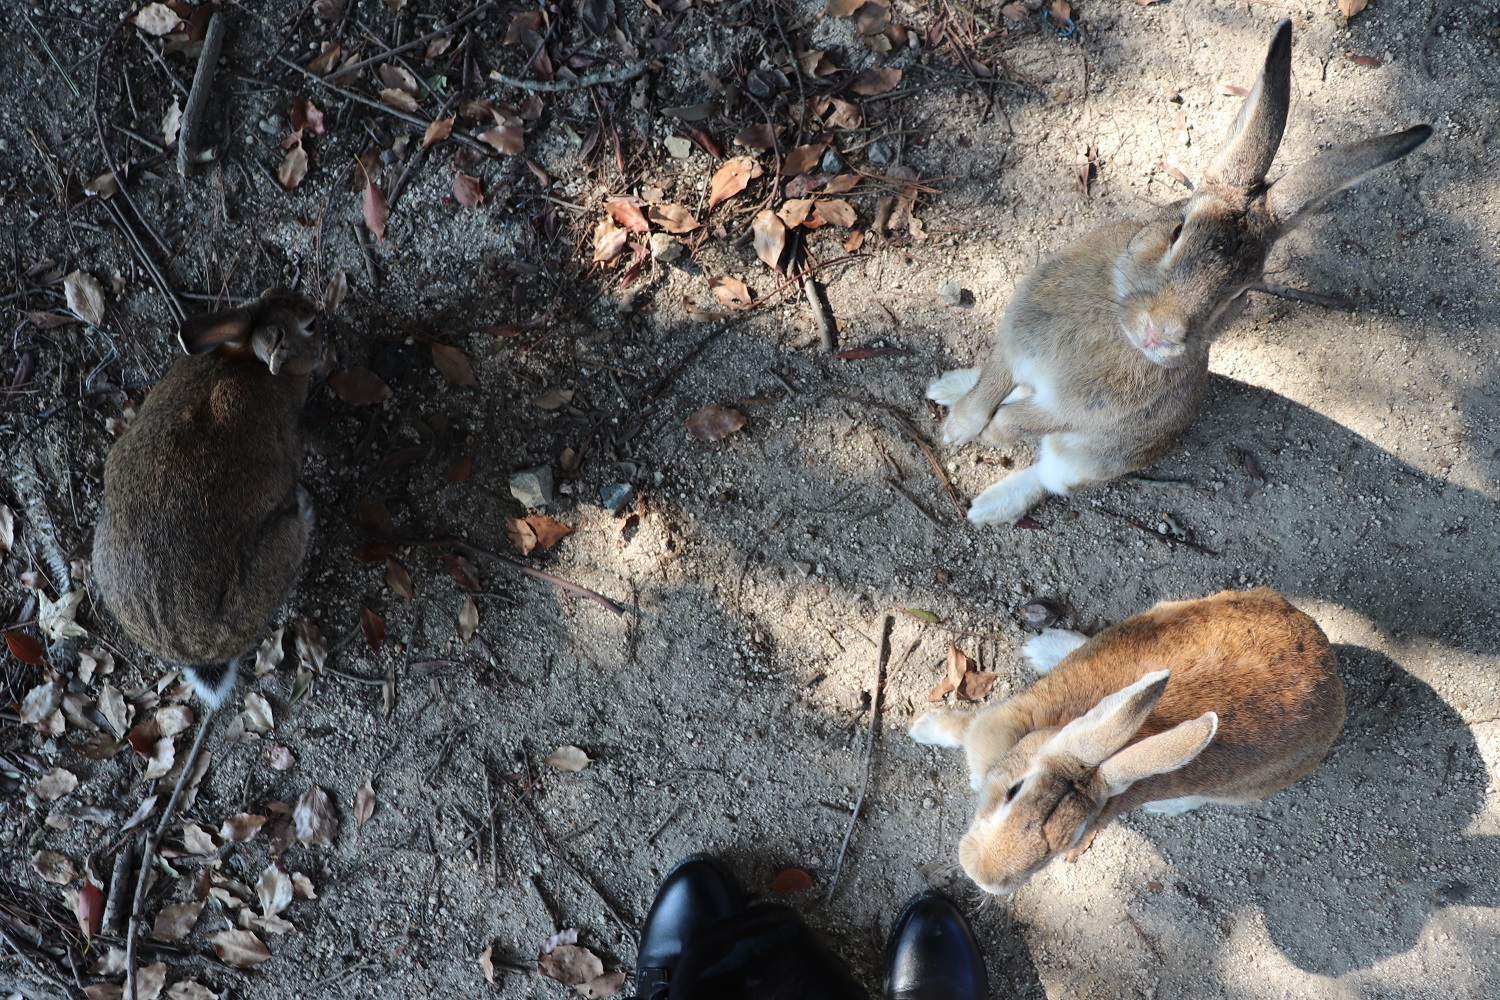 Highlight: Okunoshima (Bunny Island)